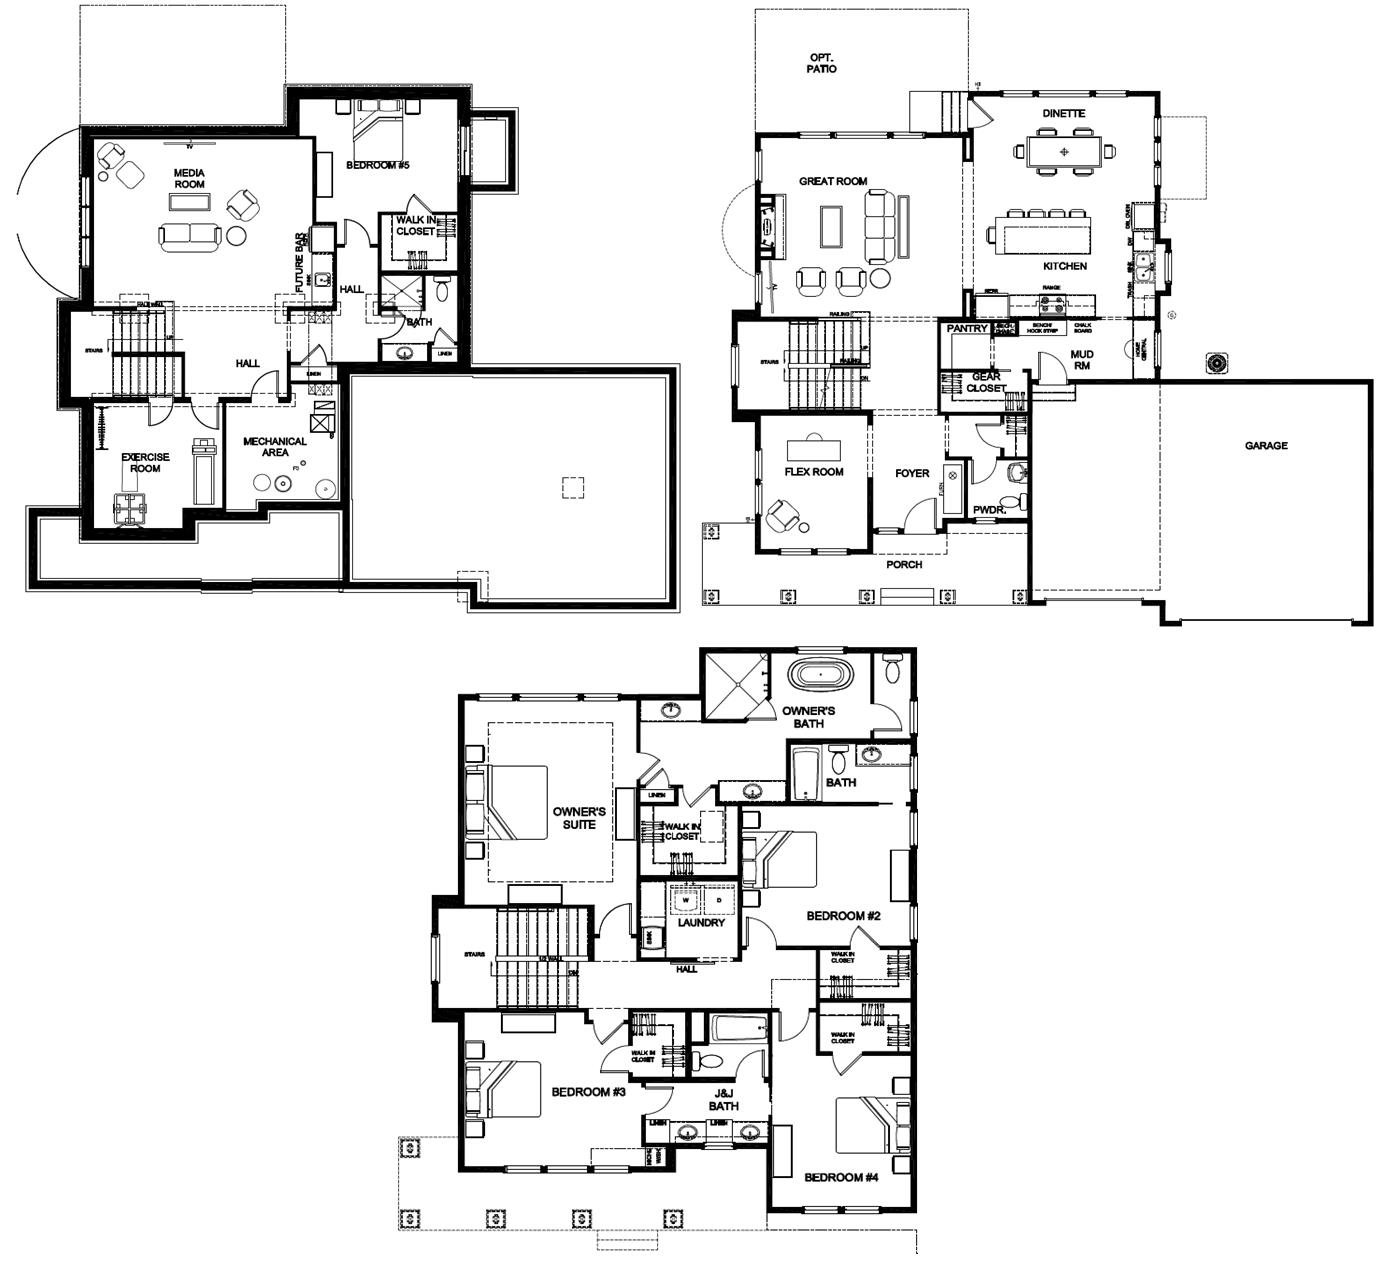 Mn home builders floor plans 28 images mn home for Mn home builders floor plans